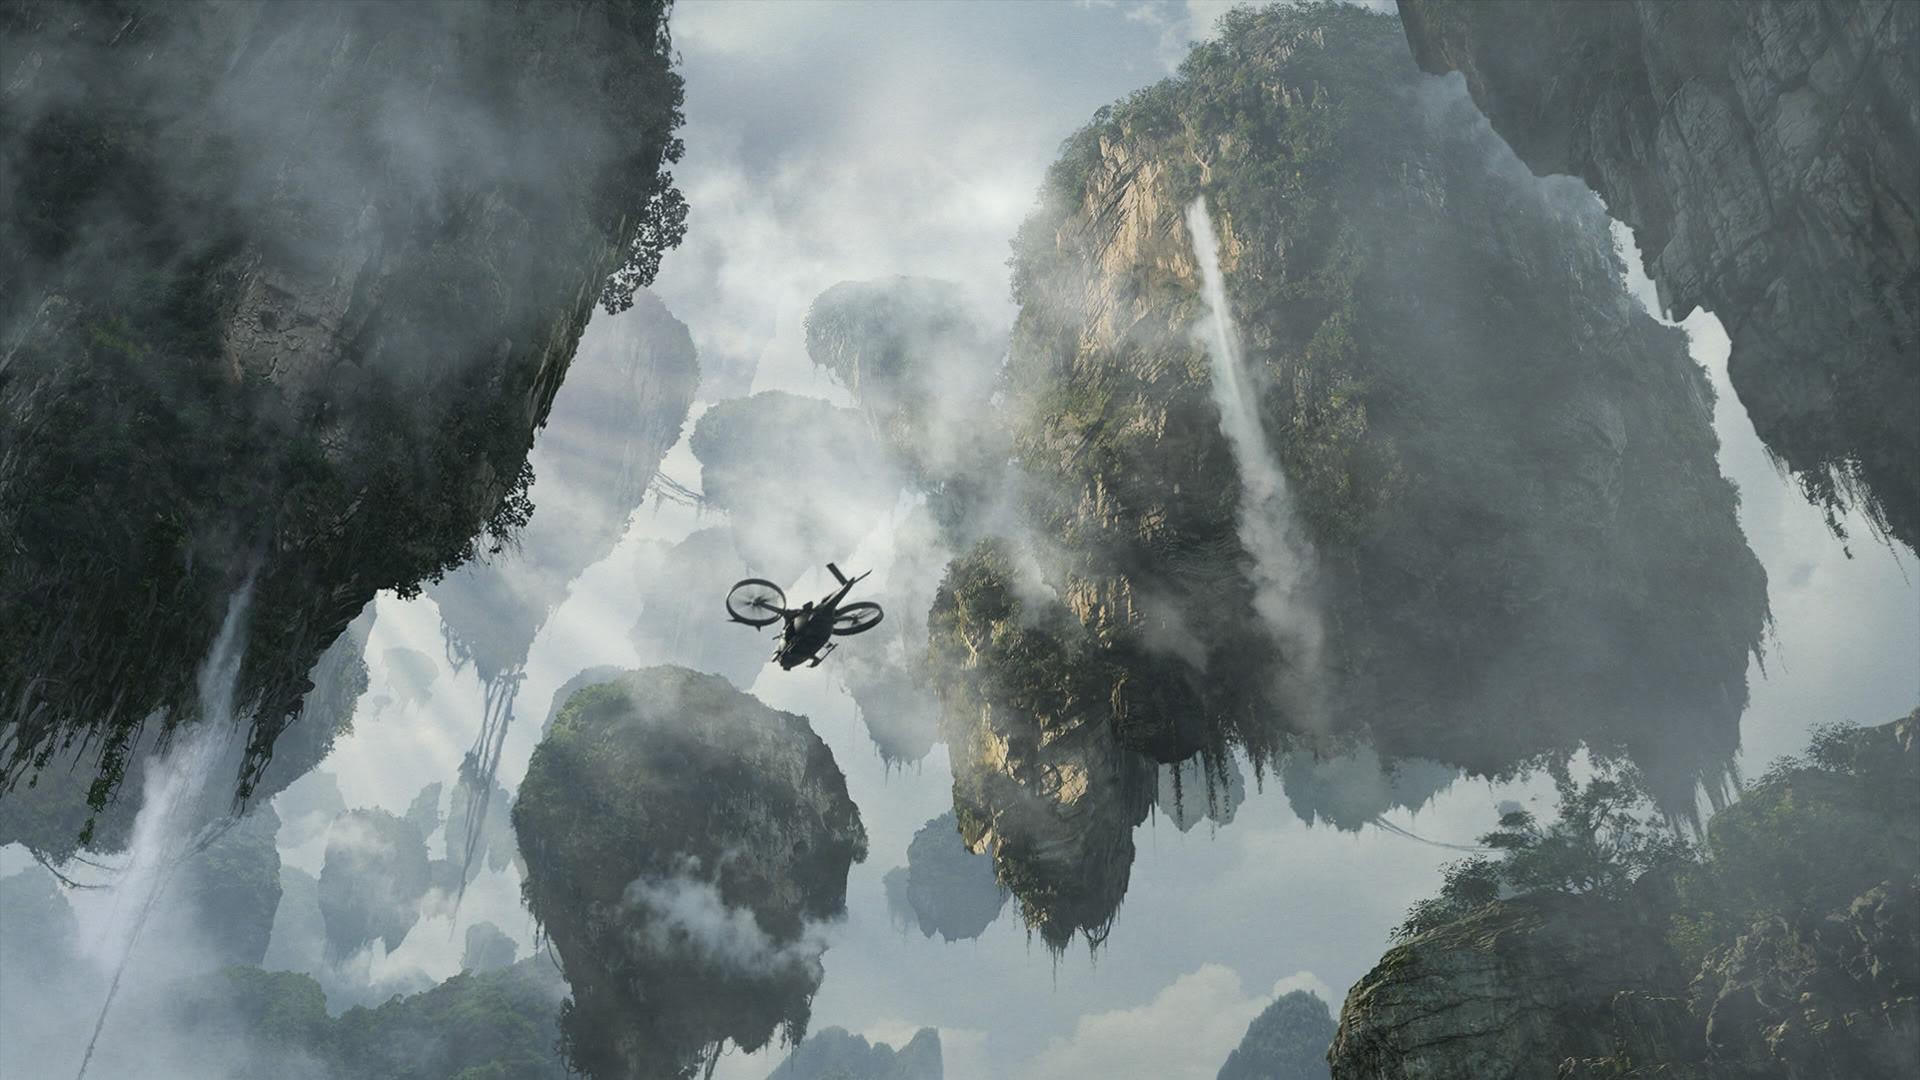 RC Helicopter among the Hallelujah Mountains HD Wallpaper 319KB 1920x1080